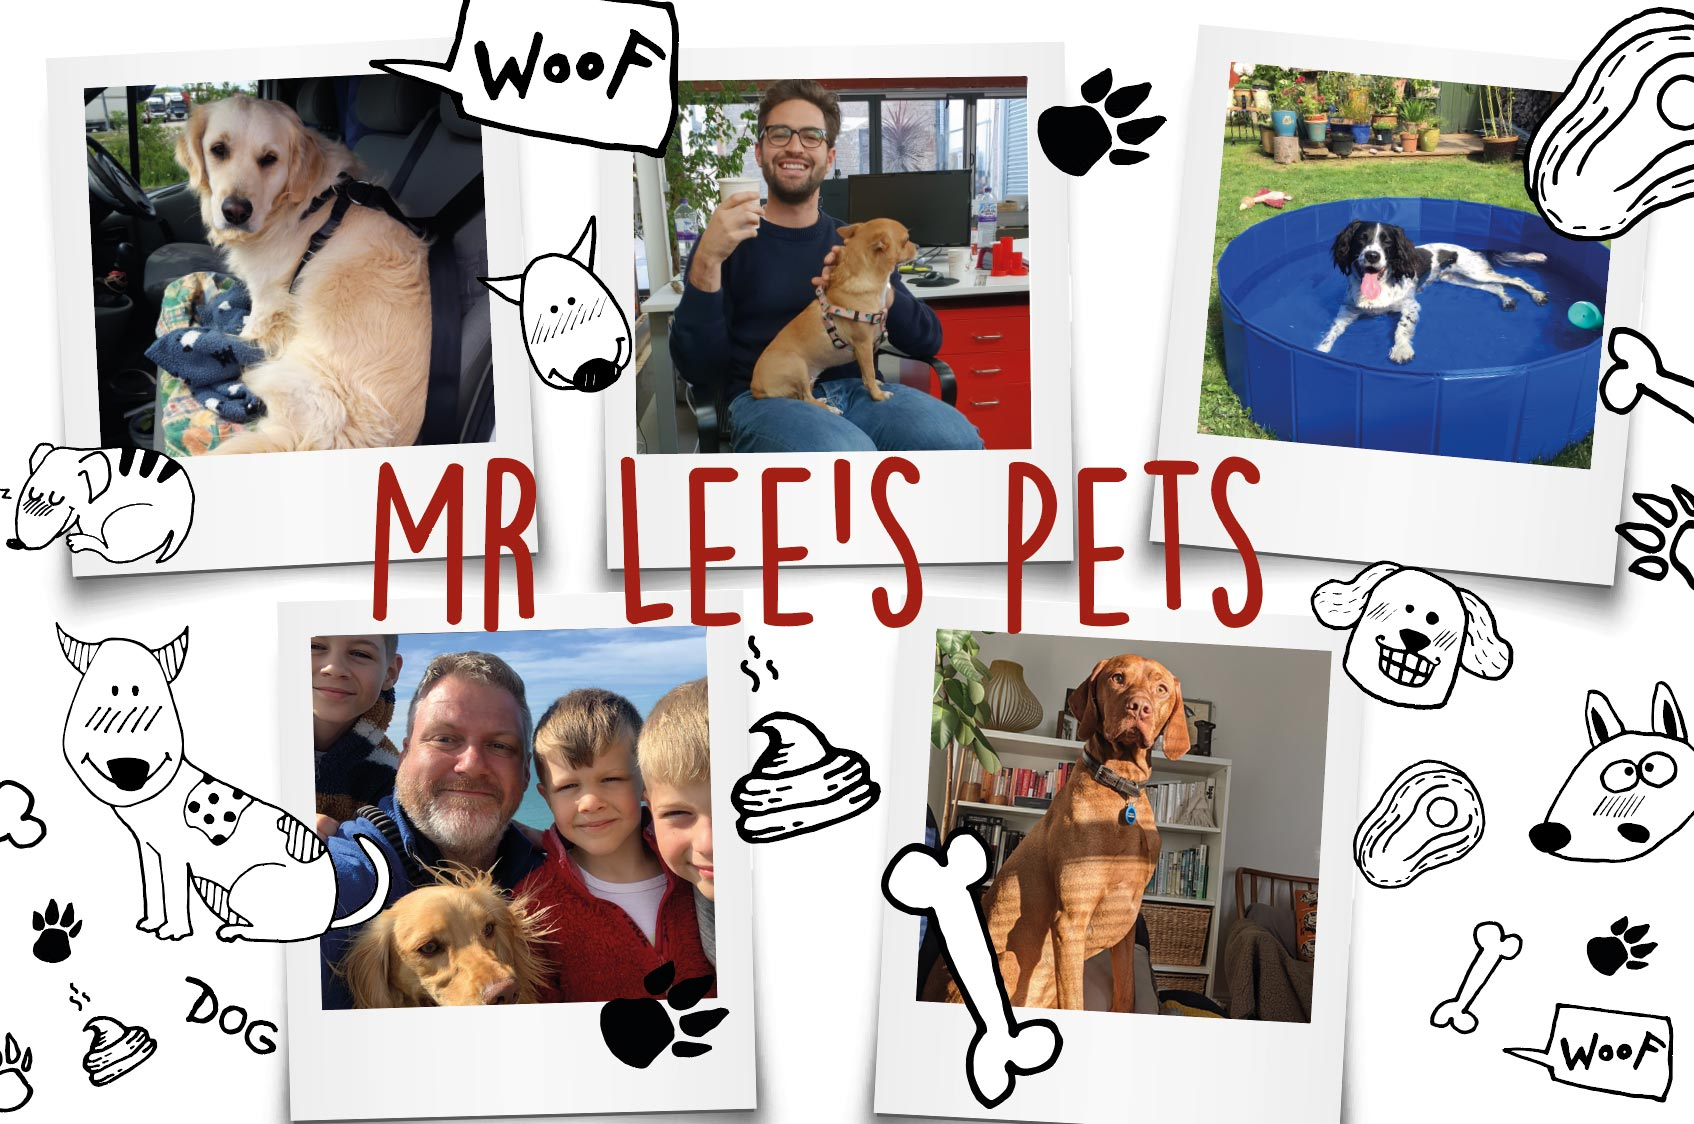 Mr Lee's Team with their dogs